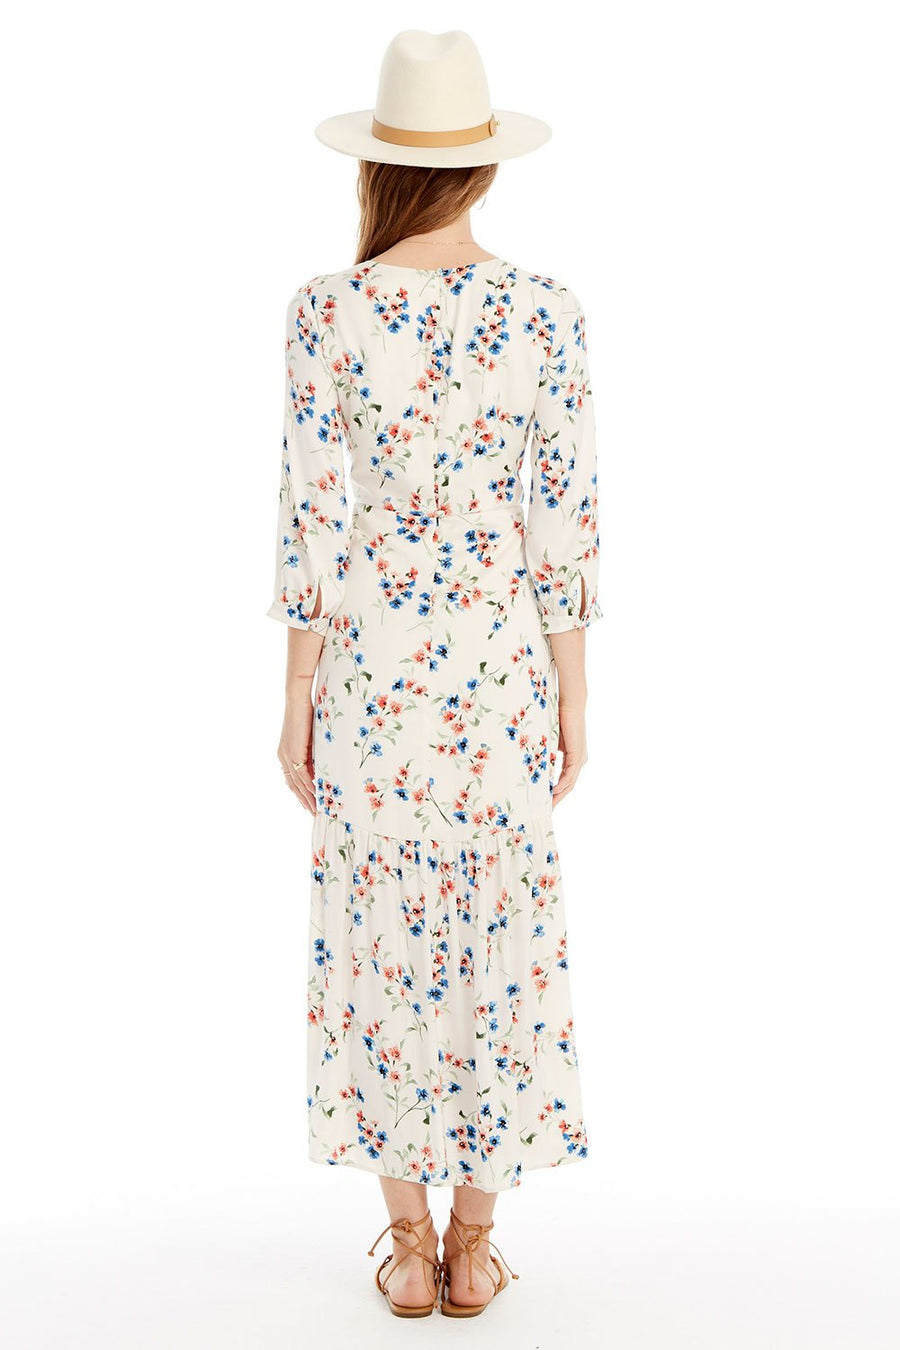 Lottie Spring Blossom Maxi Dress